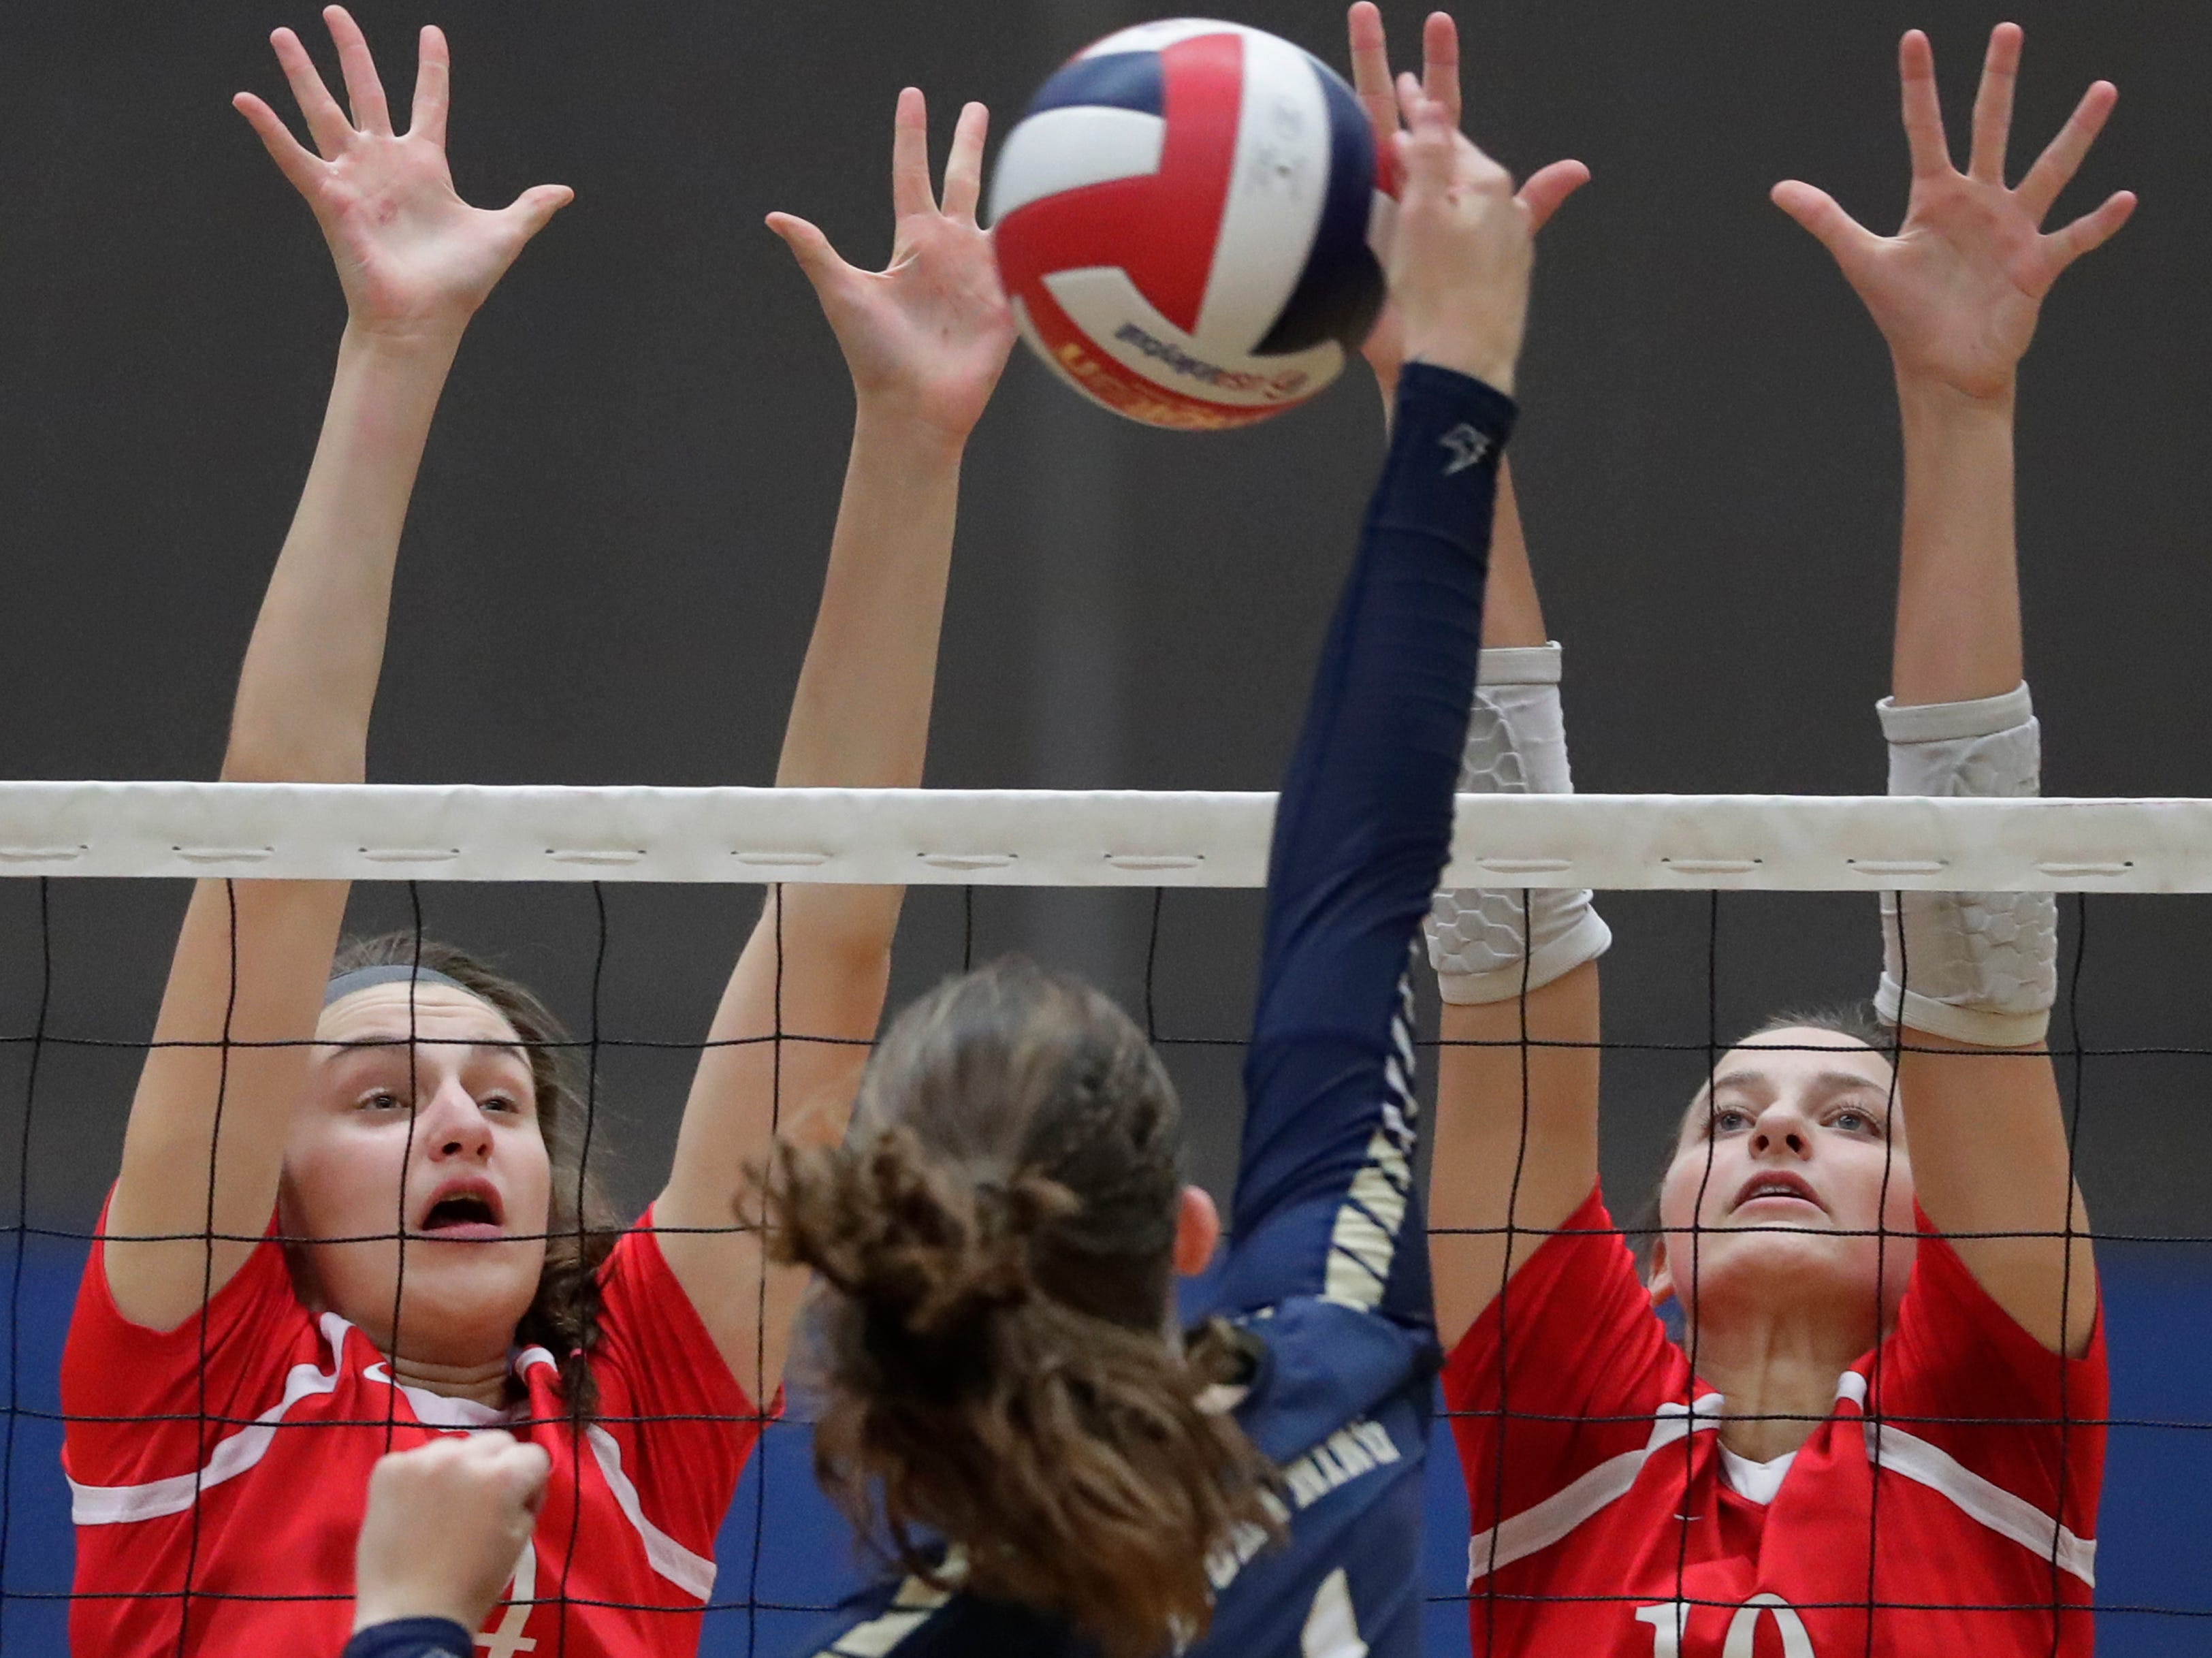 Appleton North High School's Sarah Ganser (1) hits a shot against Kimberly High School's Maddy Schreiber (14) and Courtney Pearson (10) during their girls volleyball match Thursday, Sept. 27, 2018, in Appleton, Wis. 